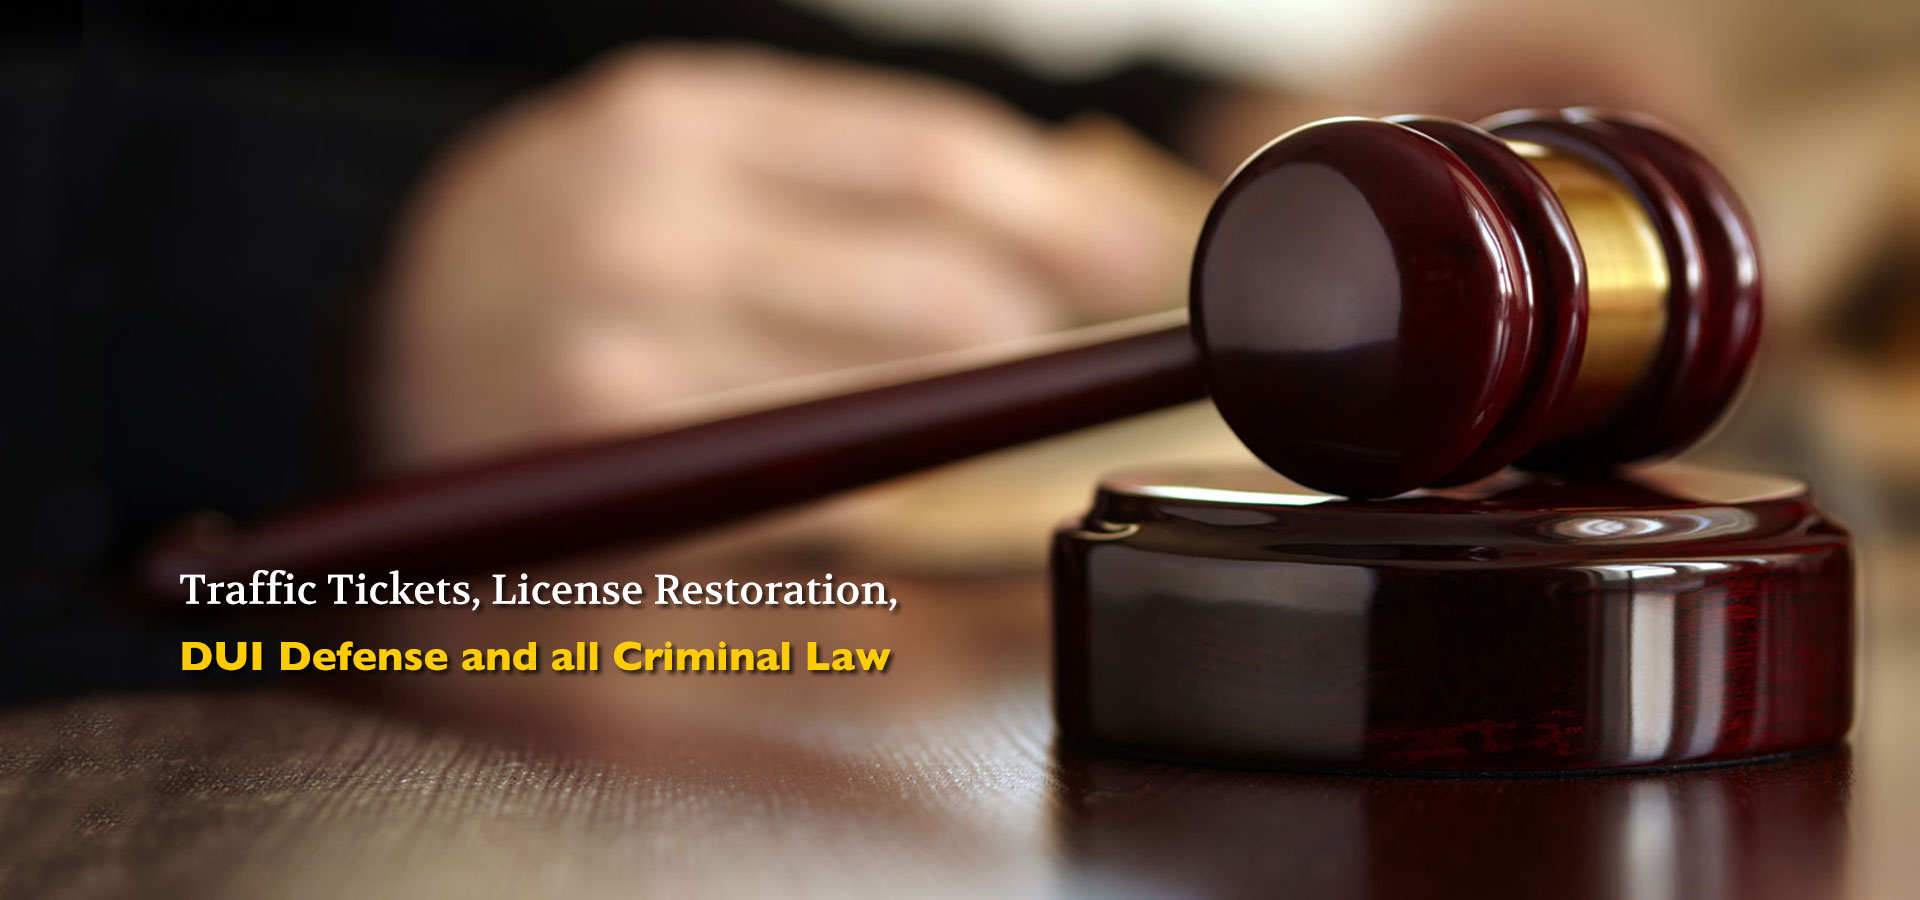 Beverly Hills DUI Lawyers MI